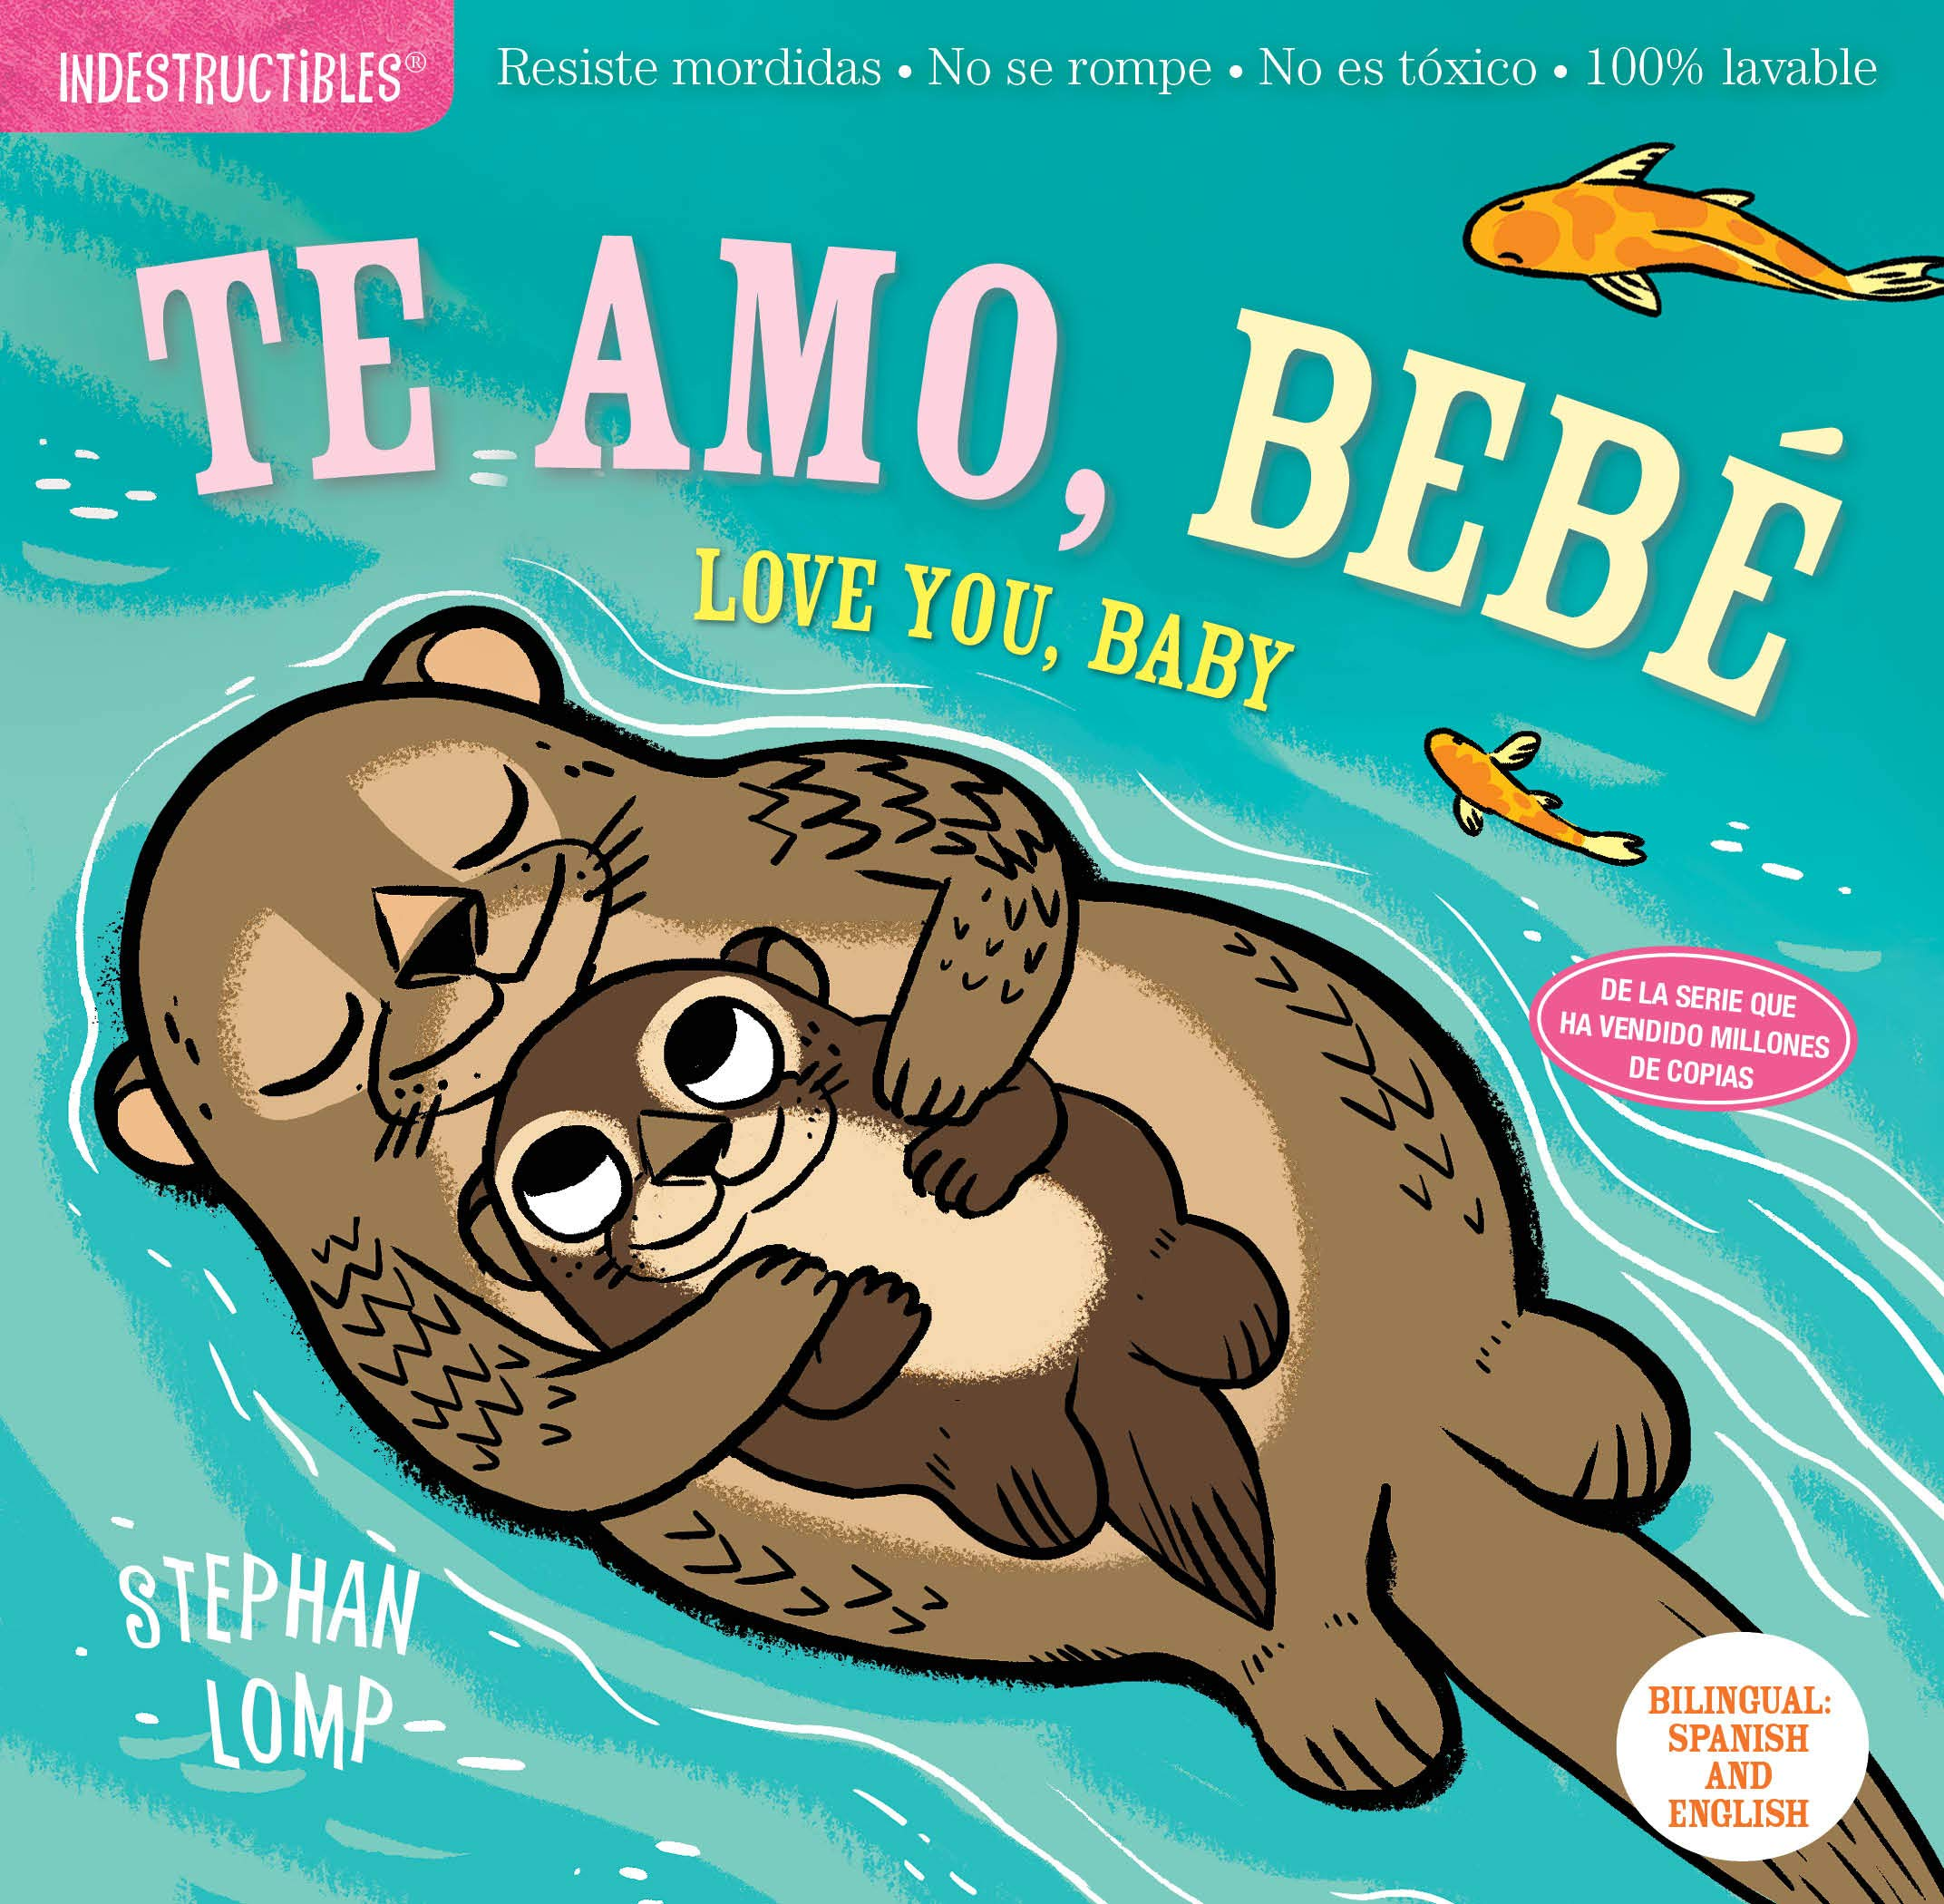 Indestructibles: Te amo, bebé / Love You, Baby: Chew Proof · Rip Proof · Nontoxic · 100% Washable (Book for Babies, Newborn Books, Safe to Chew) (Spanish and English Edition)